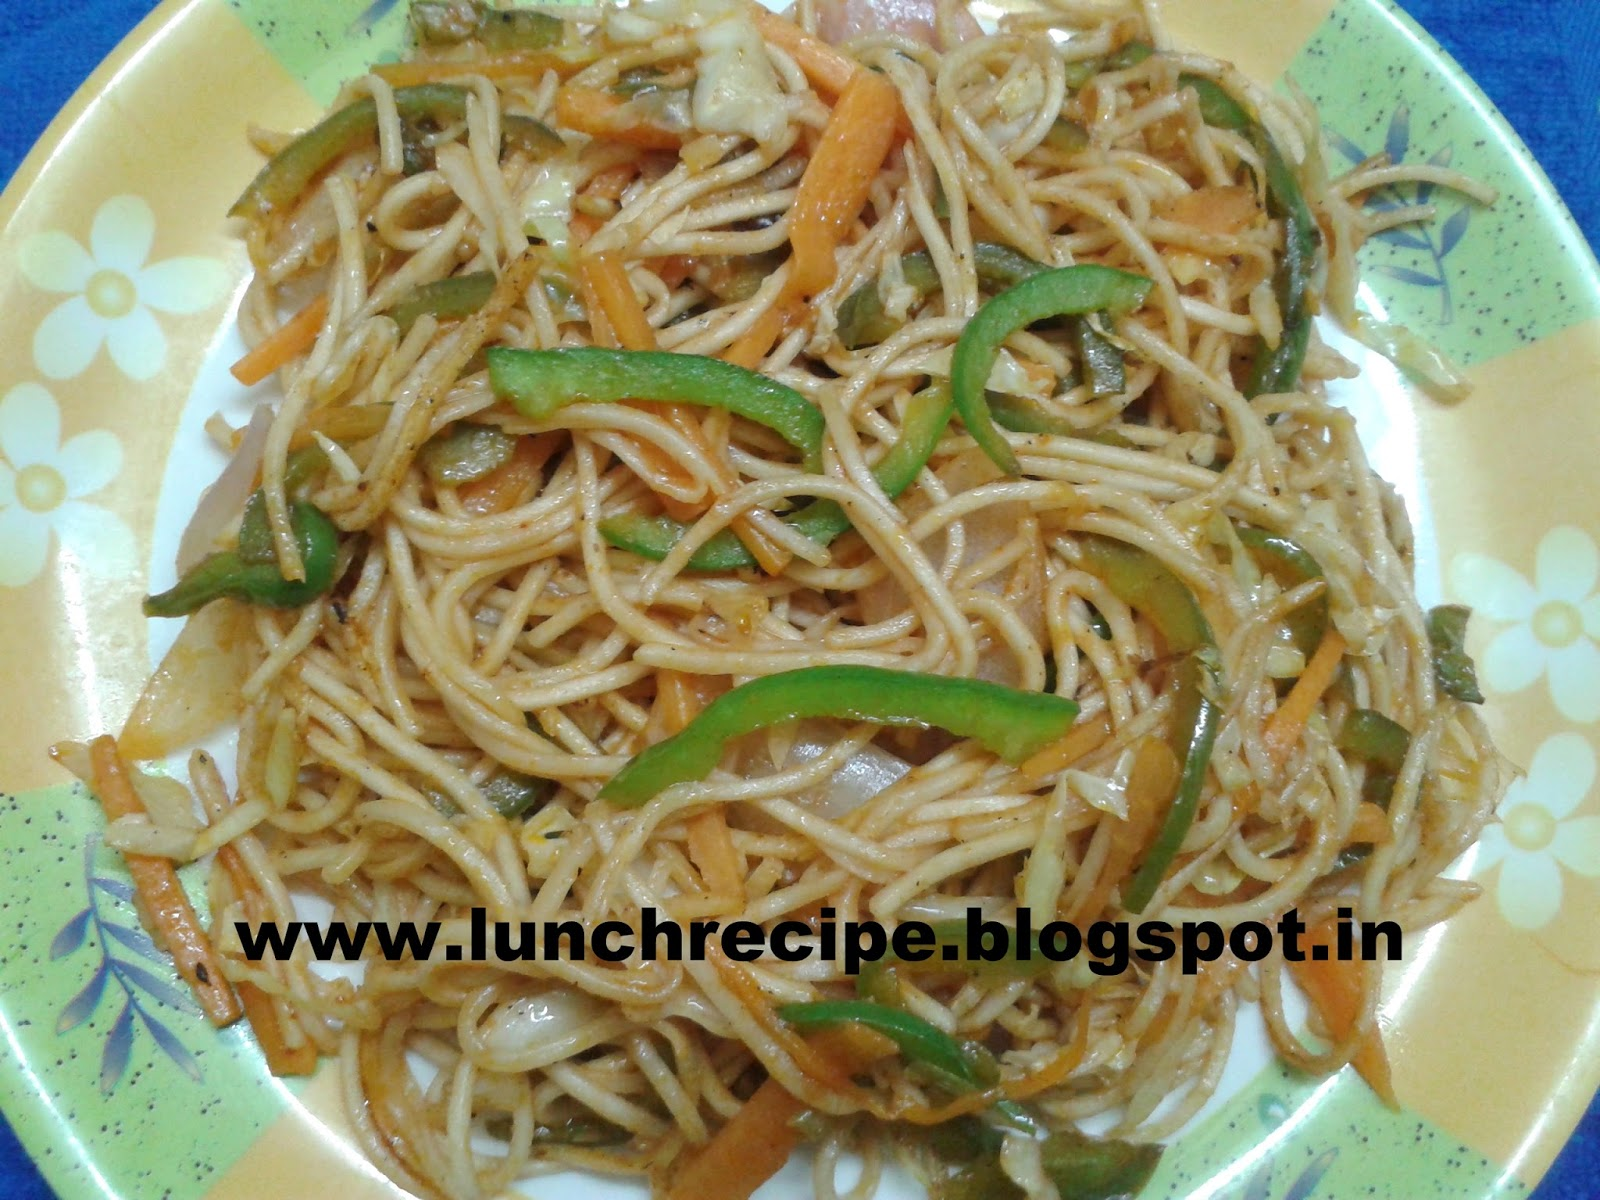 How to make Veggie Soya Noodles Recipe | वेजी सोया नूडल्स - Veggie Soya Noodles